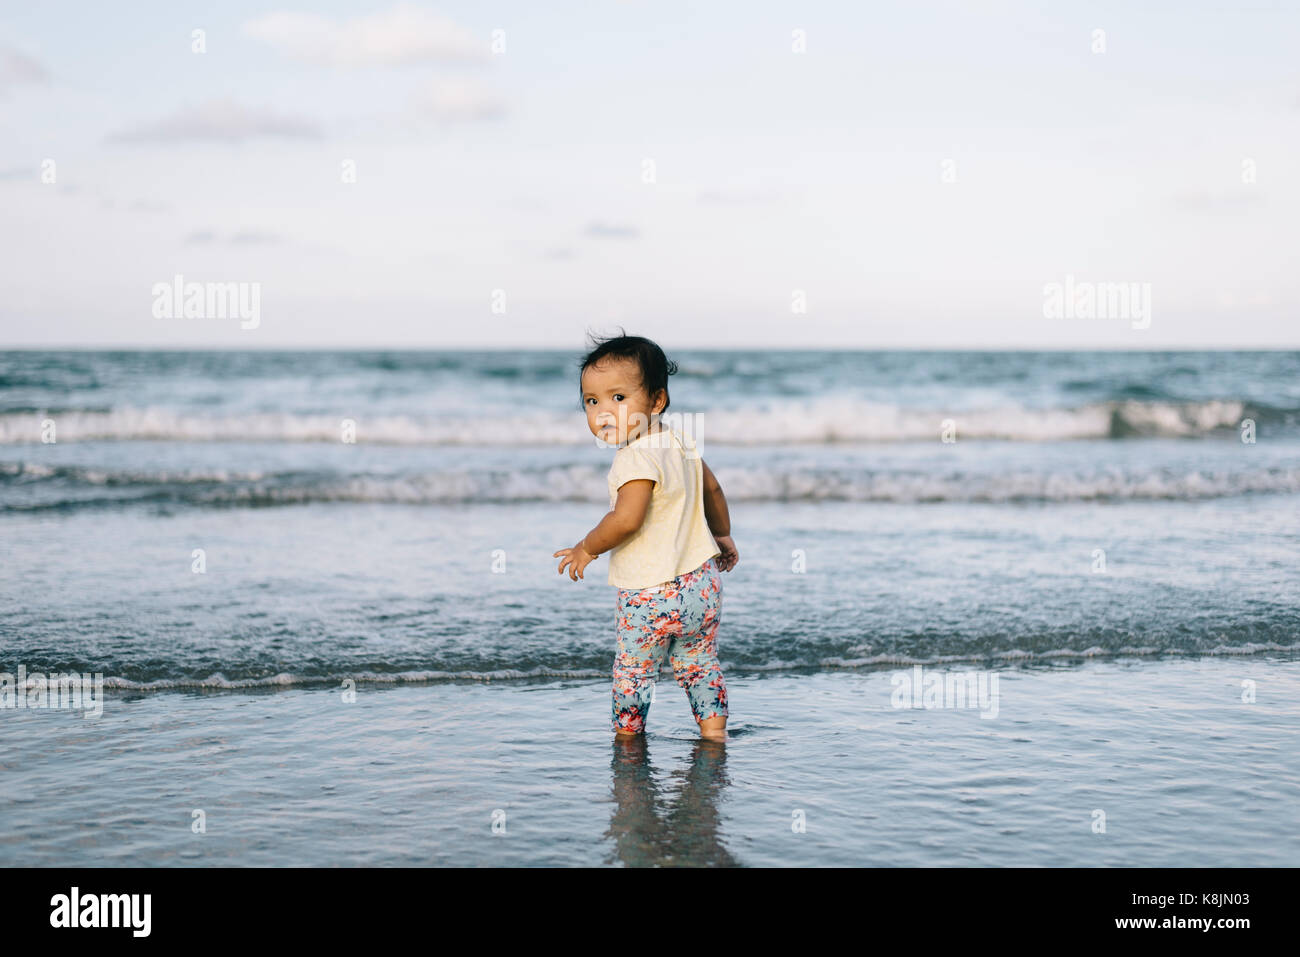 baby or infant playing beach waves for the first time making  curious face.learning concept.parenting concept - Stock Image